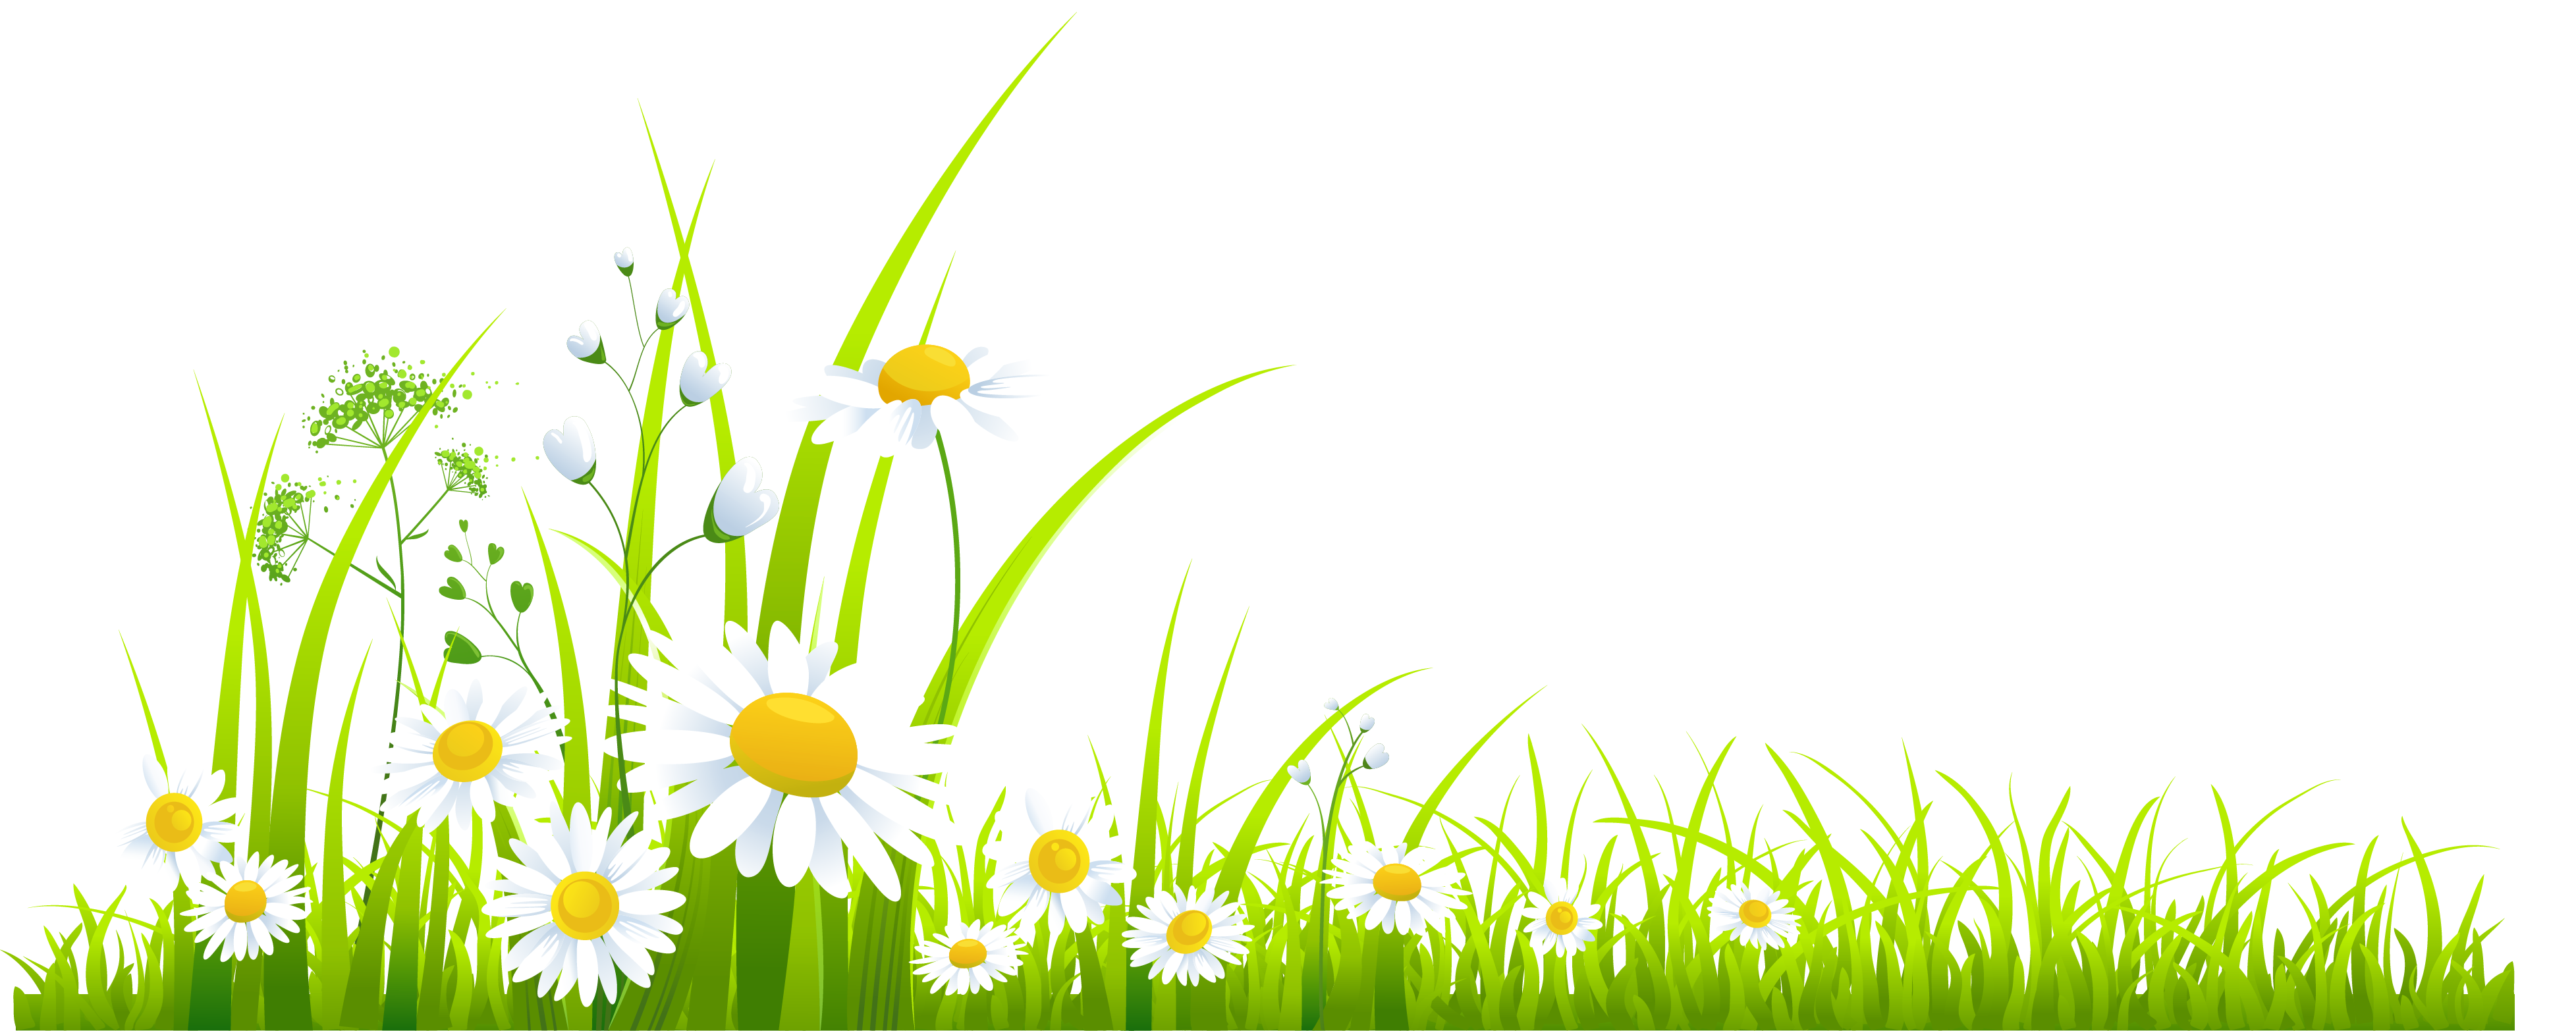 png free Spring Grass Clipart